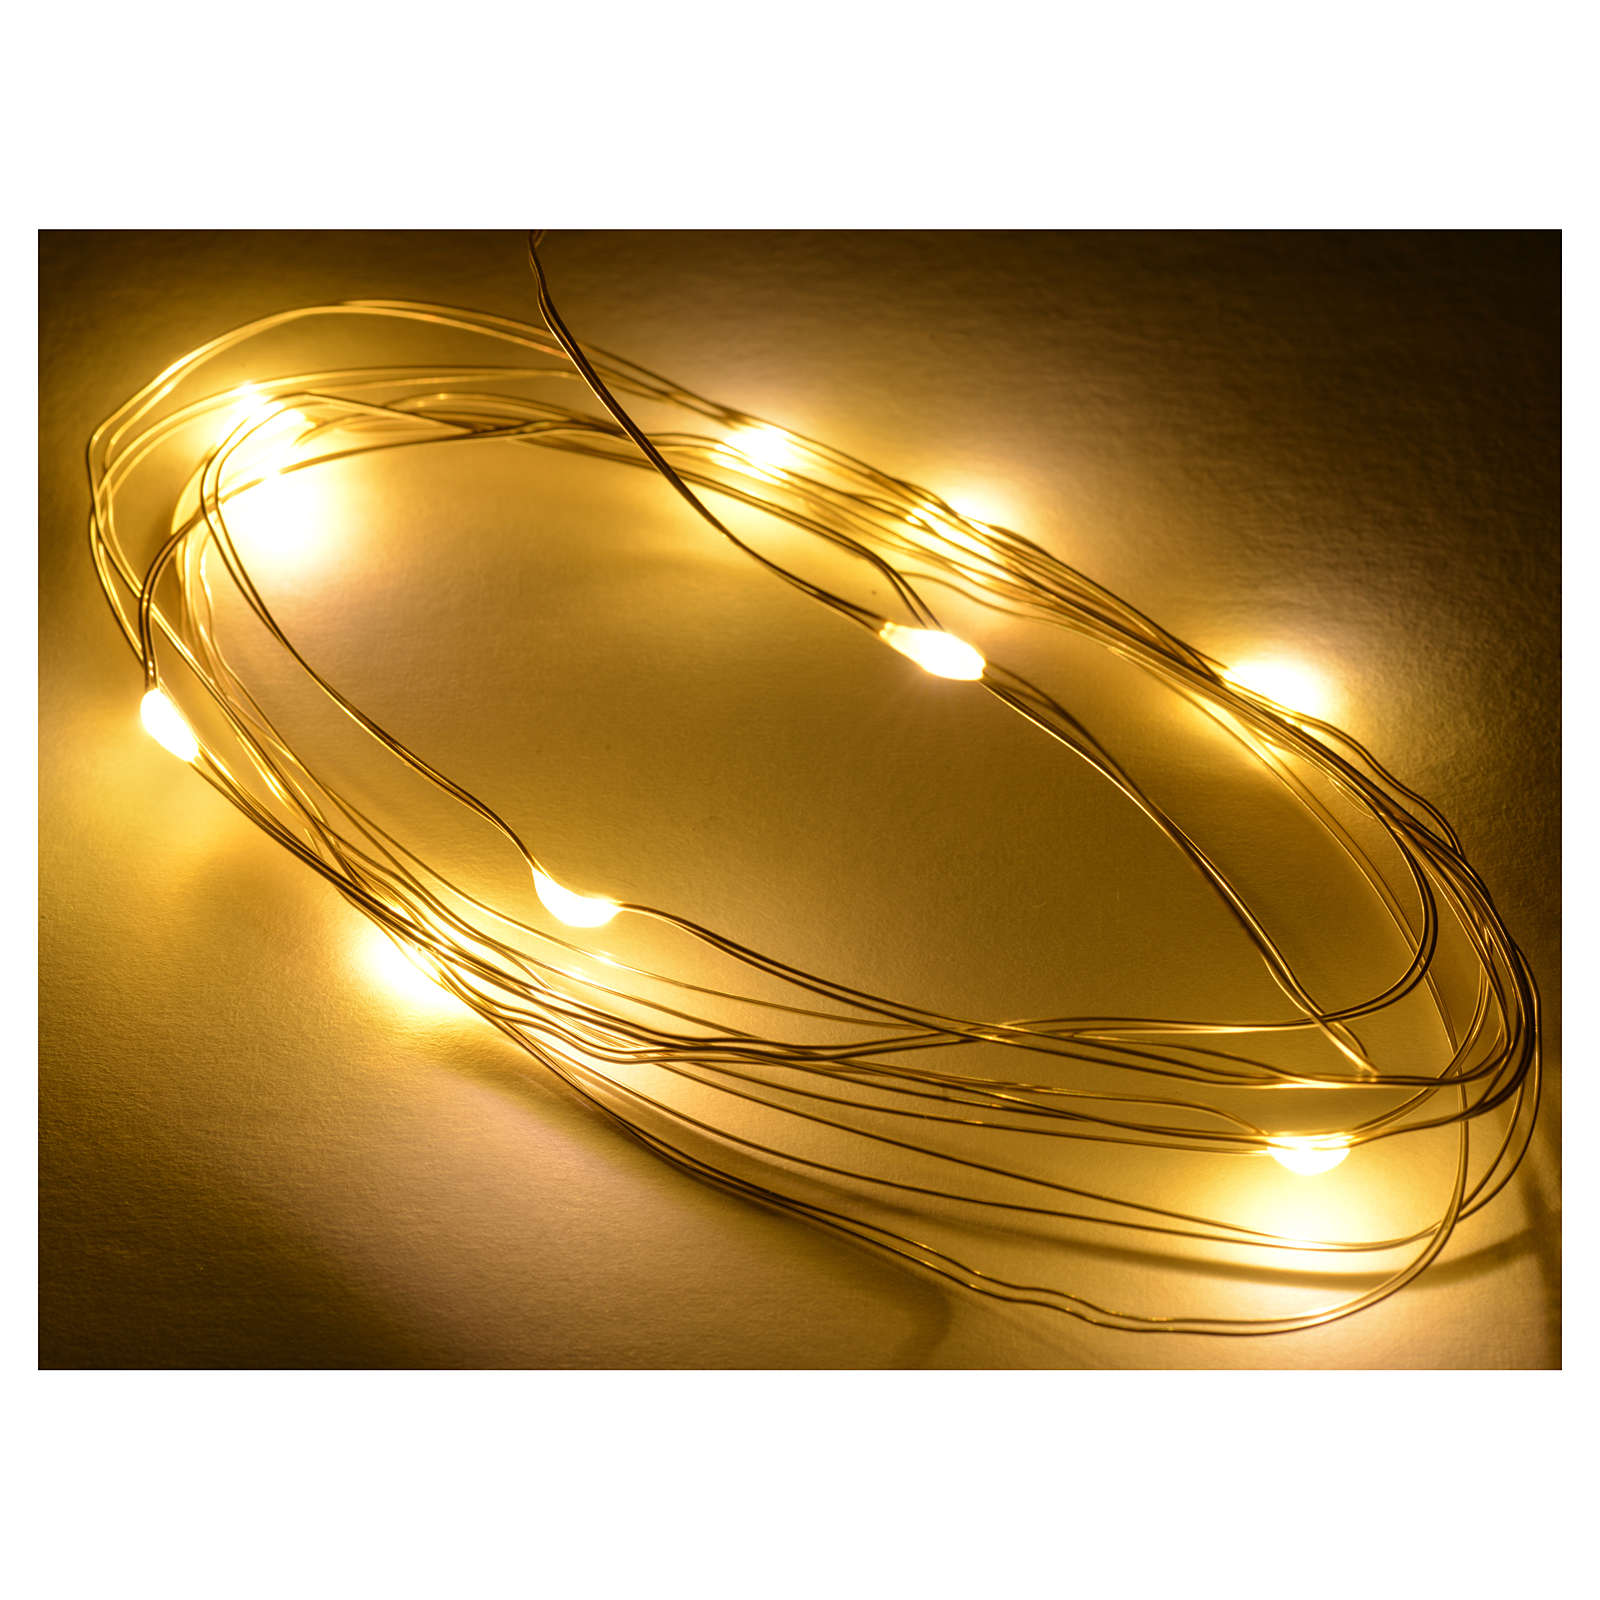 Nano led warm white 10 leds 2m for nativity scene 4